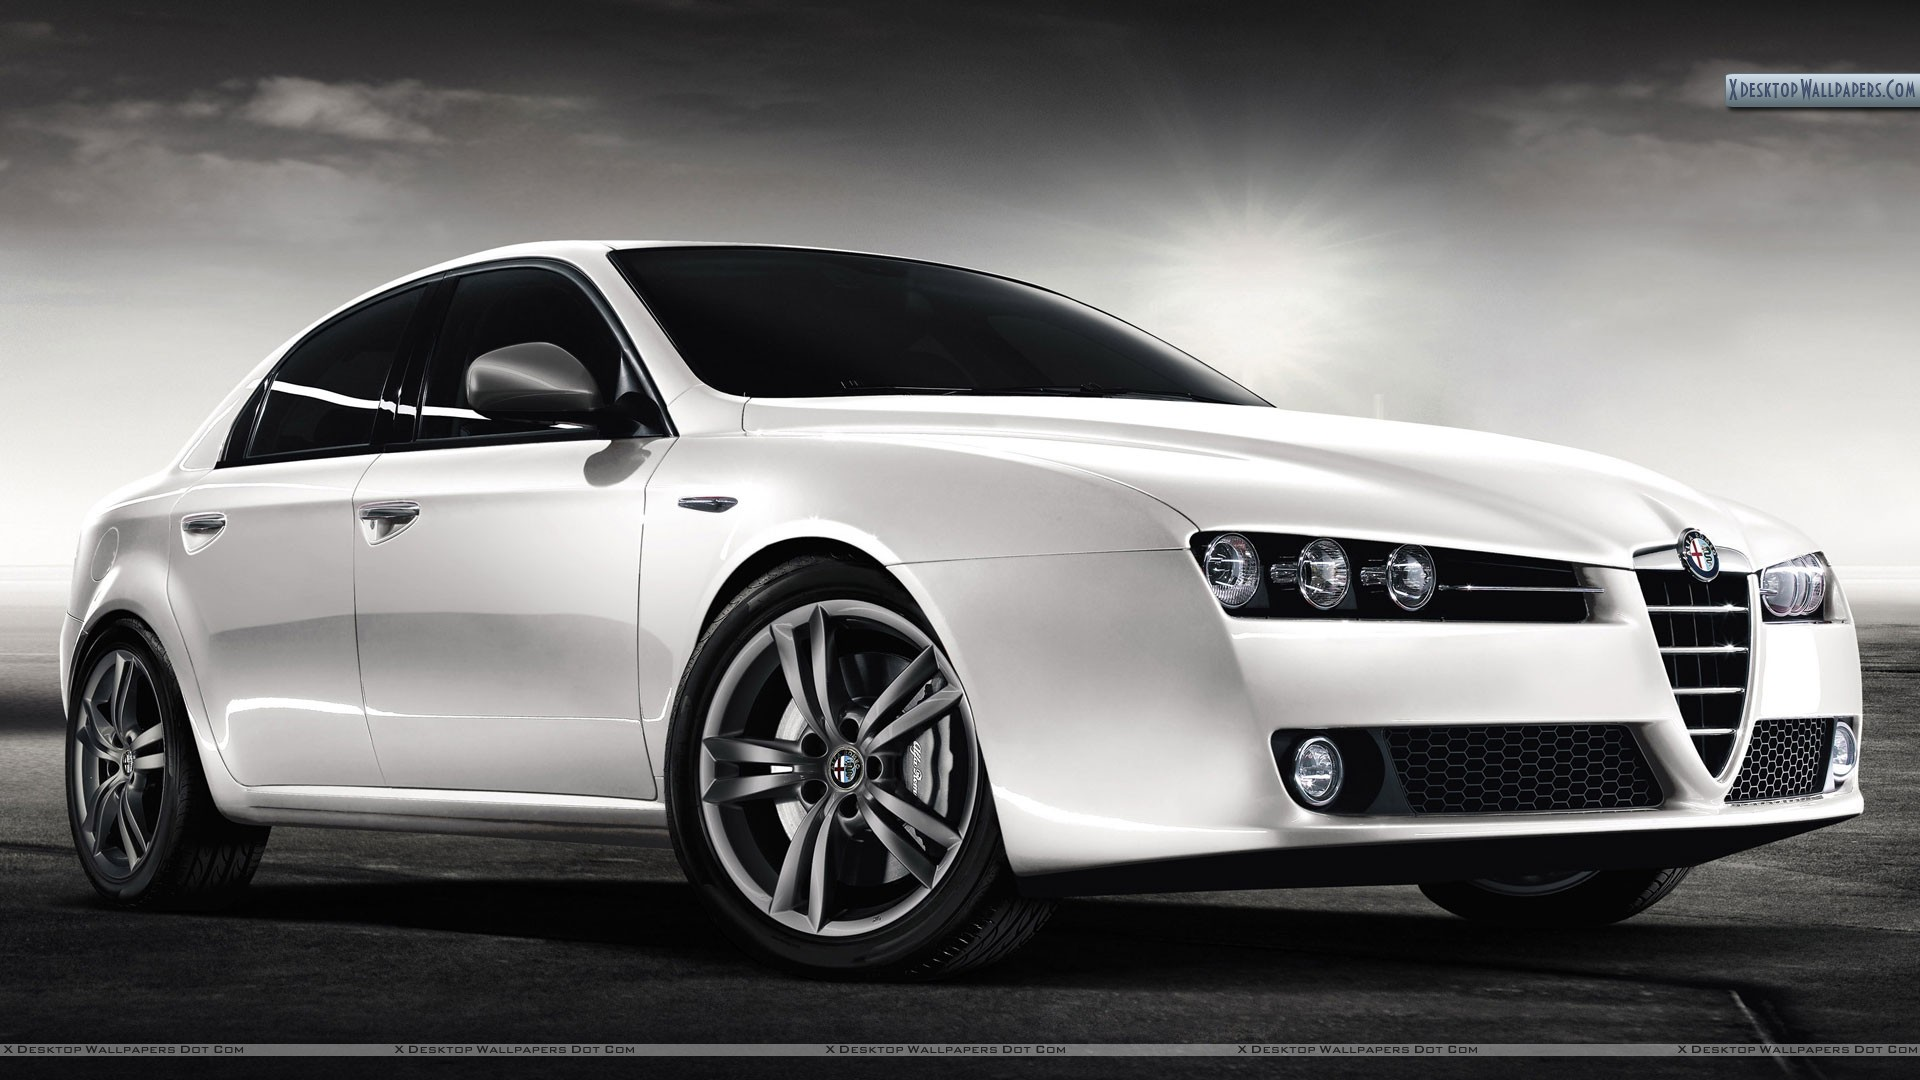 Alfa Romeo 159 Wallpapers Photos Images In Hd